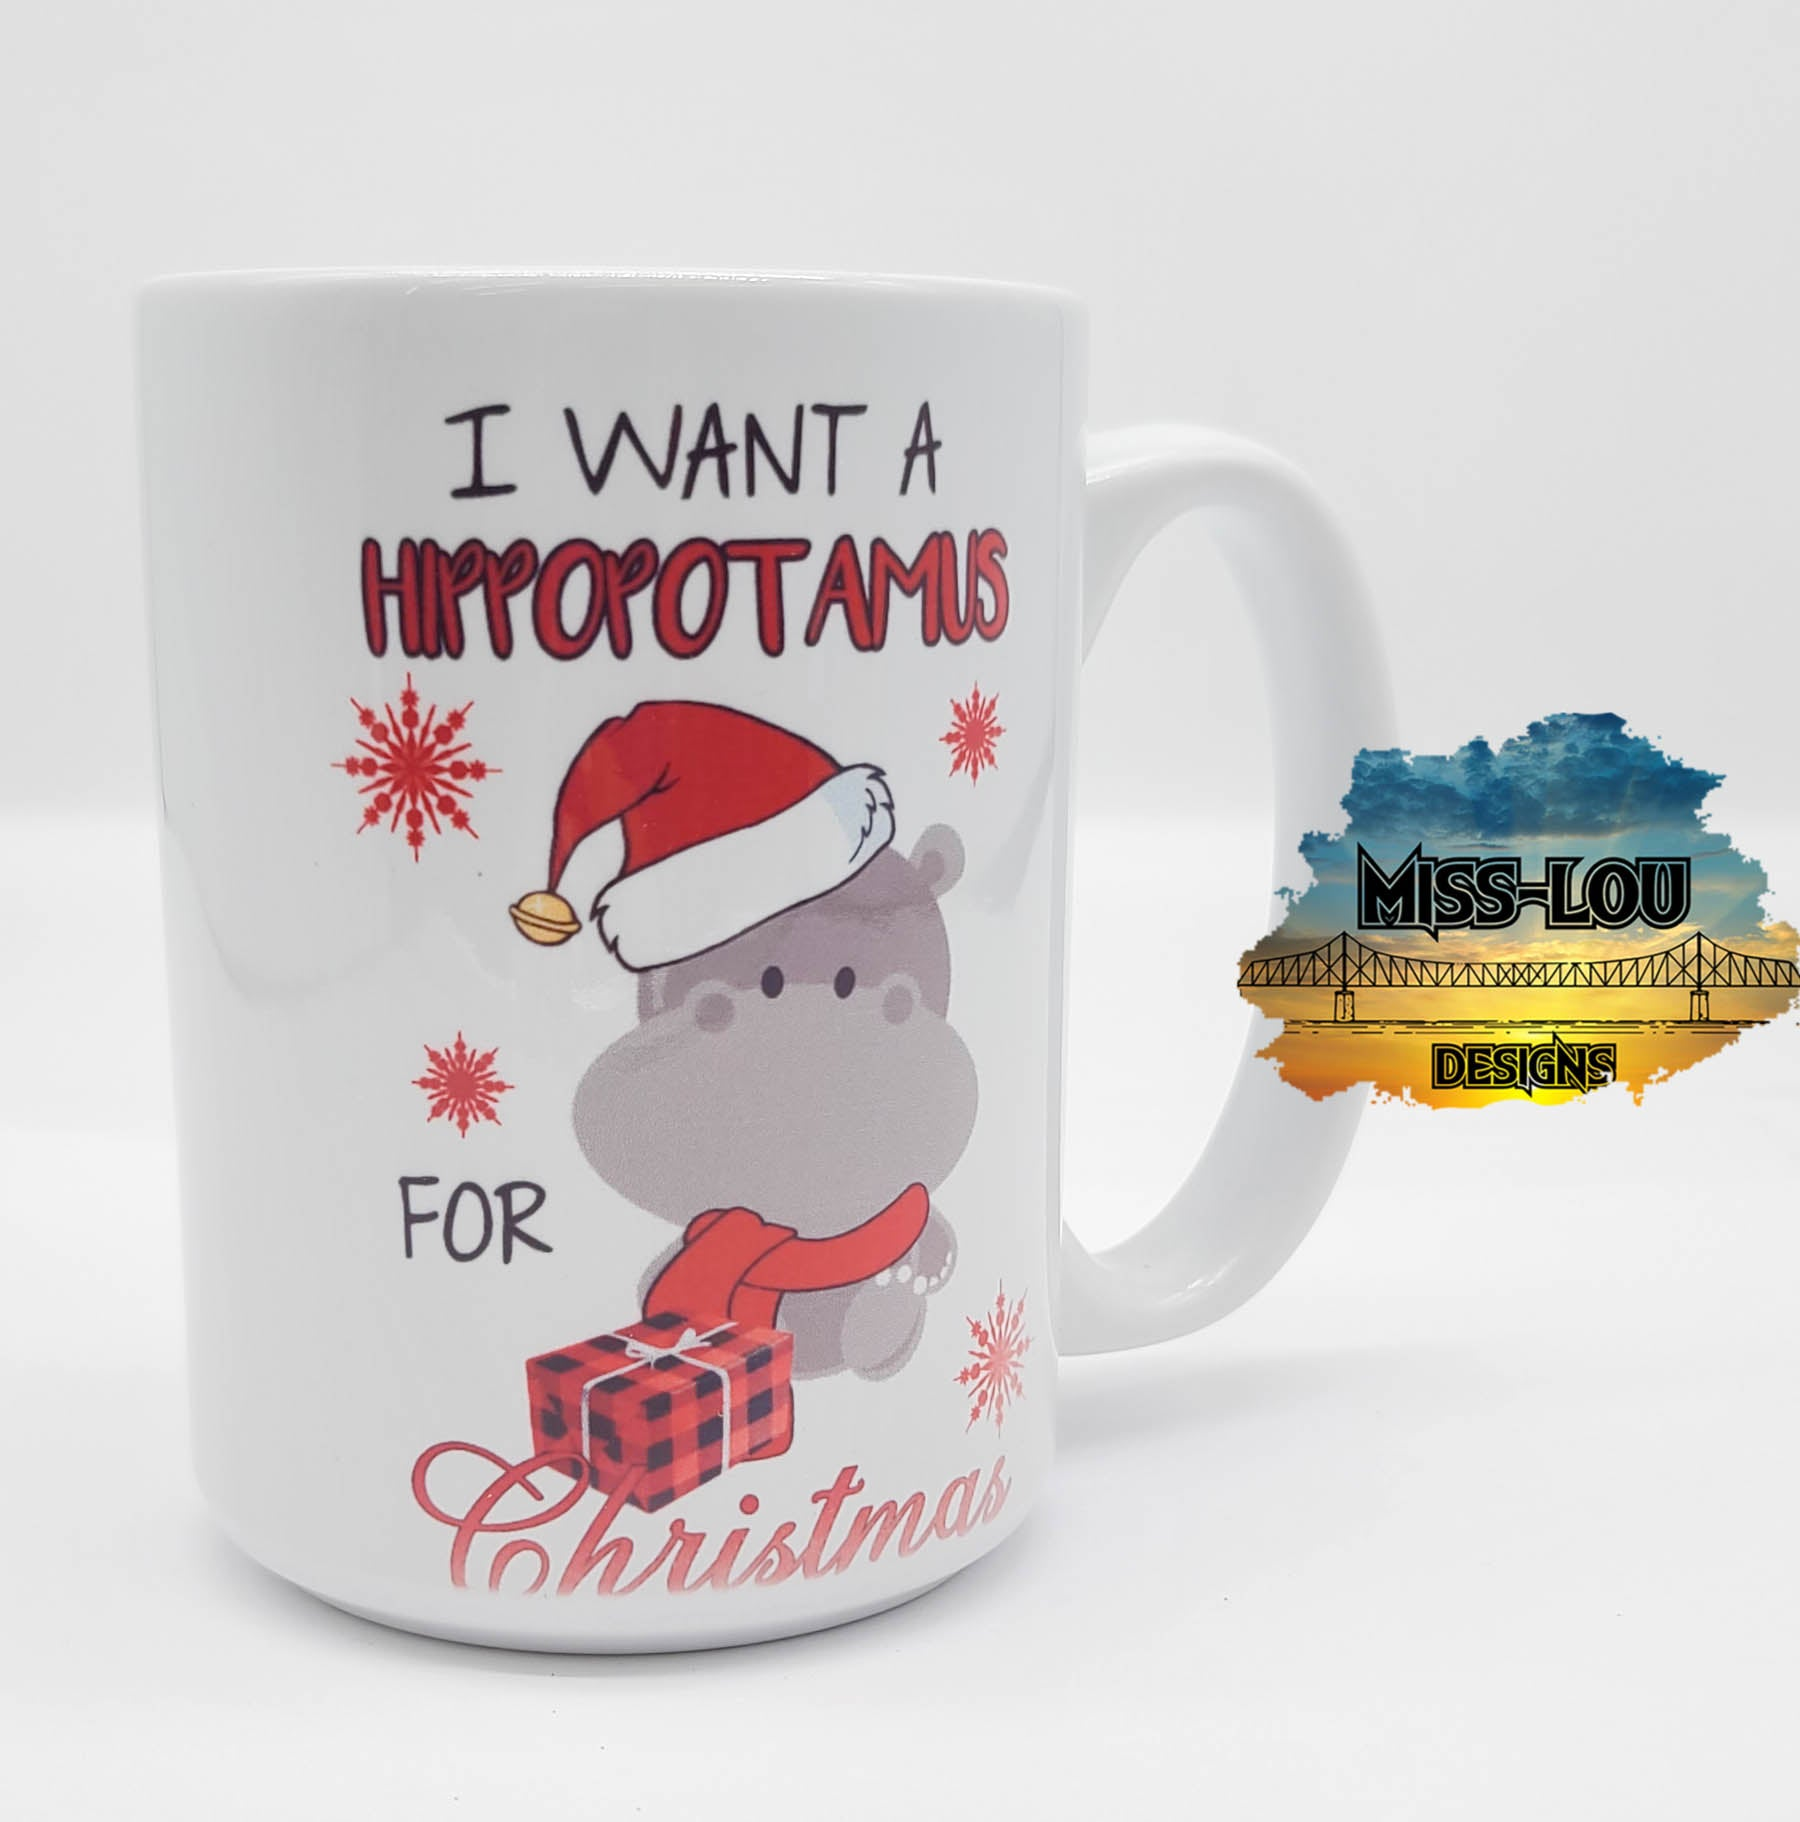 I want a Hippopotamus for Christmas 14 oz Coffee Mug